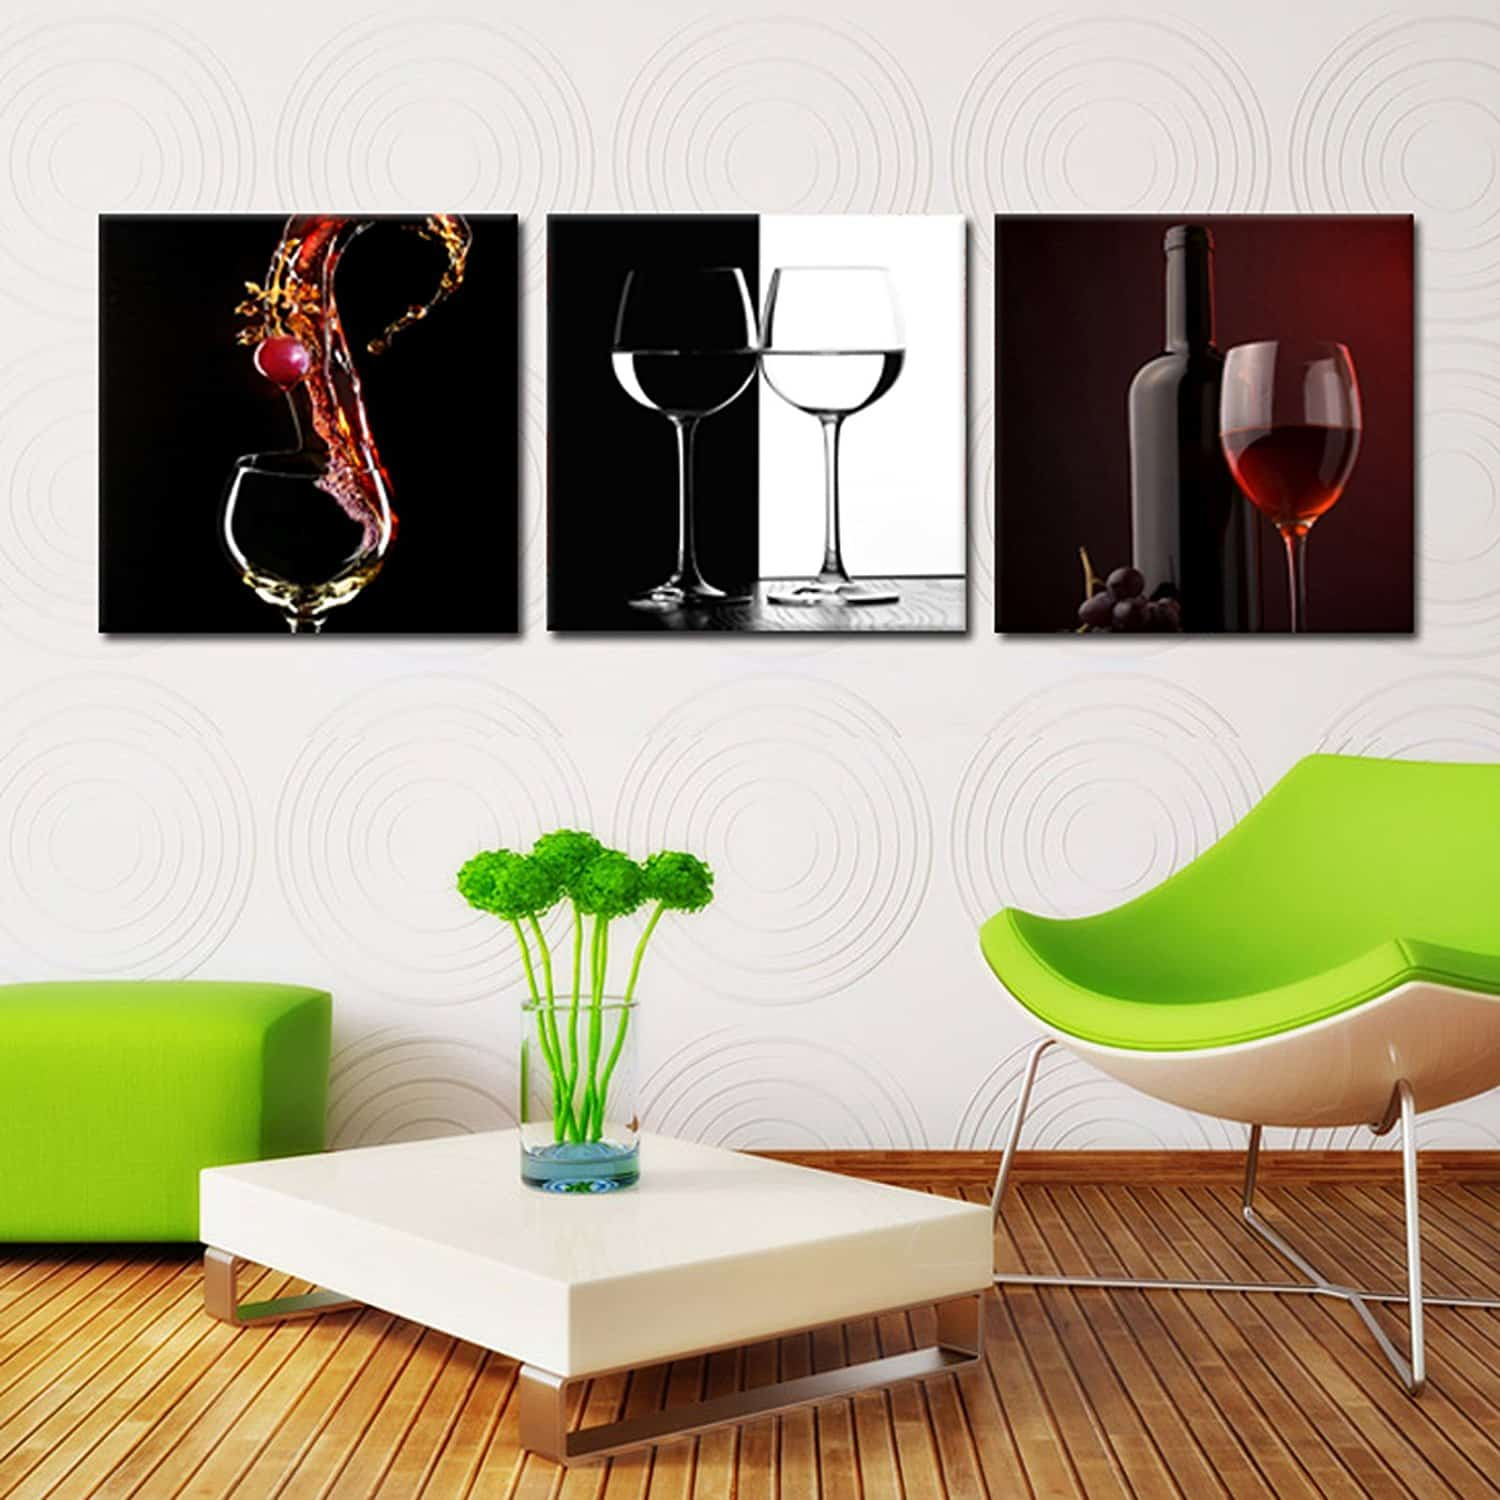 WINE&GLASS&BOTTLE digital wall artprinted on PVC film and mounted on fiberboards